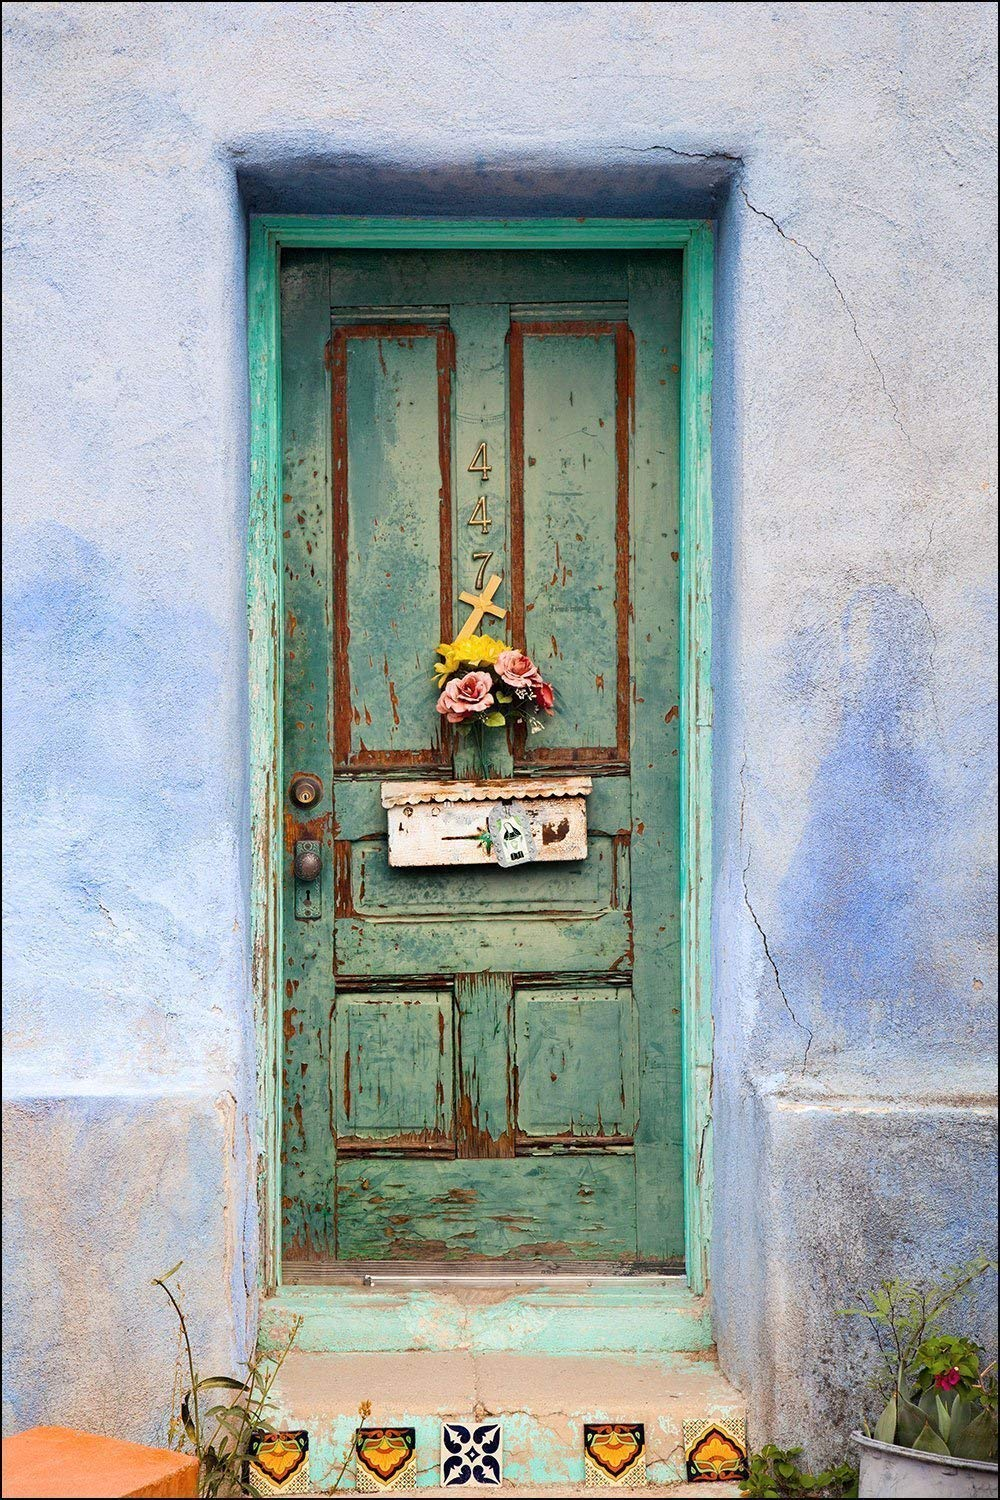 Wall Art Decor Photograph of American Southwest Colorful Painted Green Door with Flowers Mailbox and Cross with Adobe Blue Wall